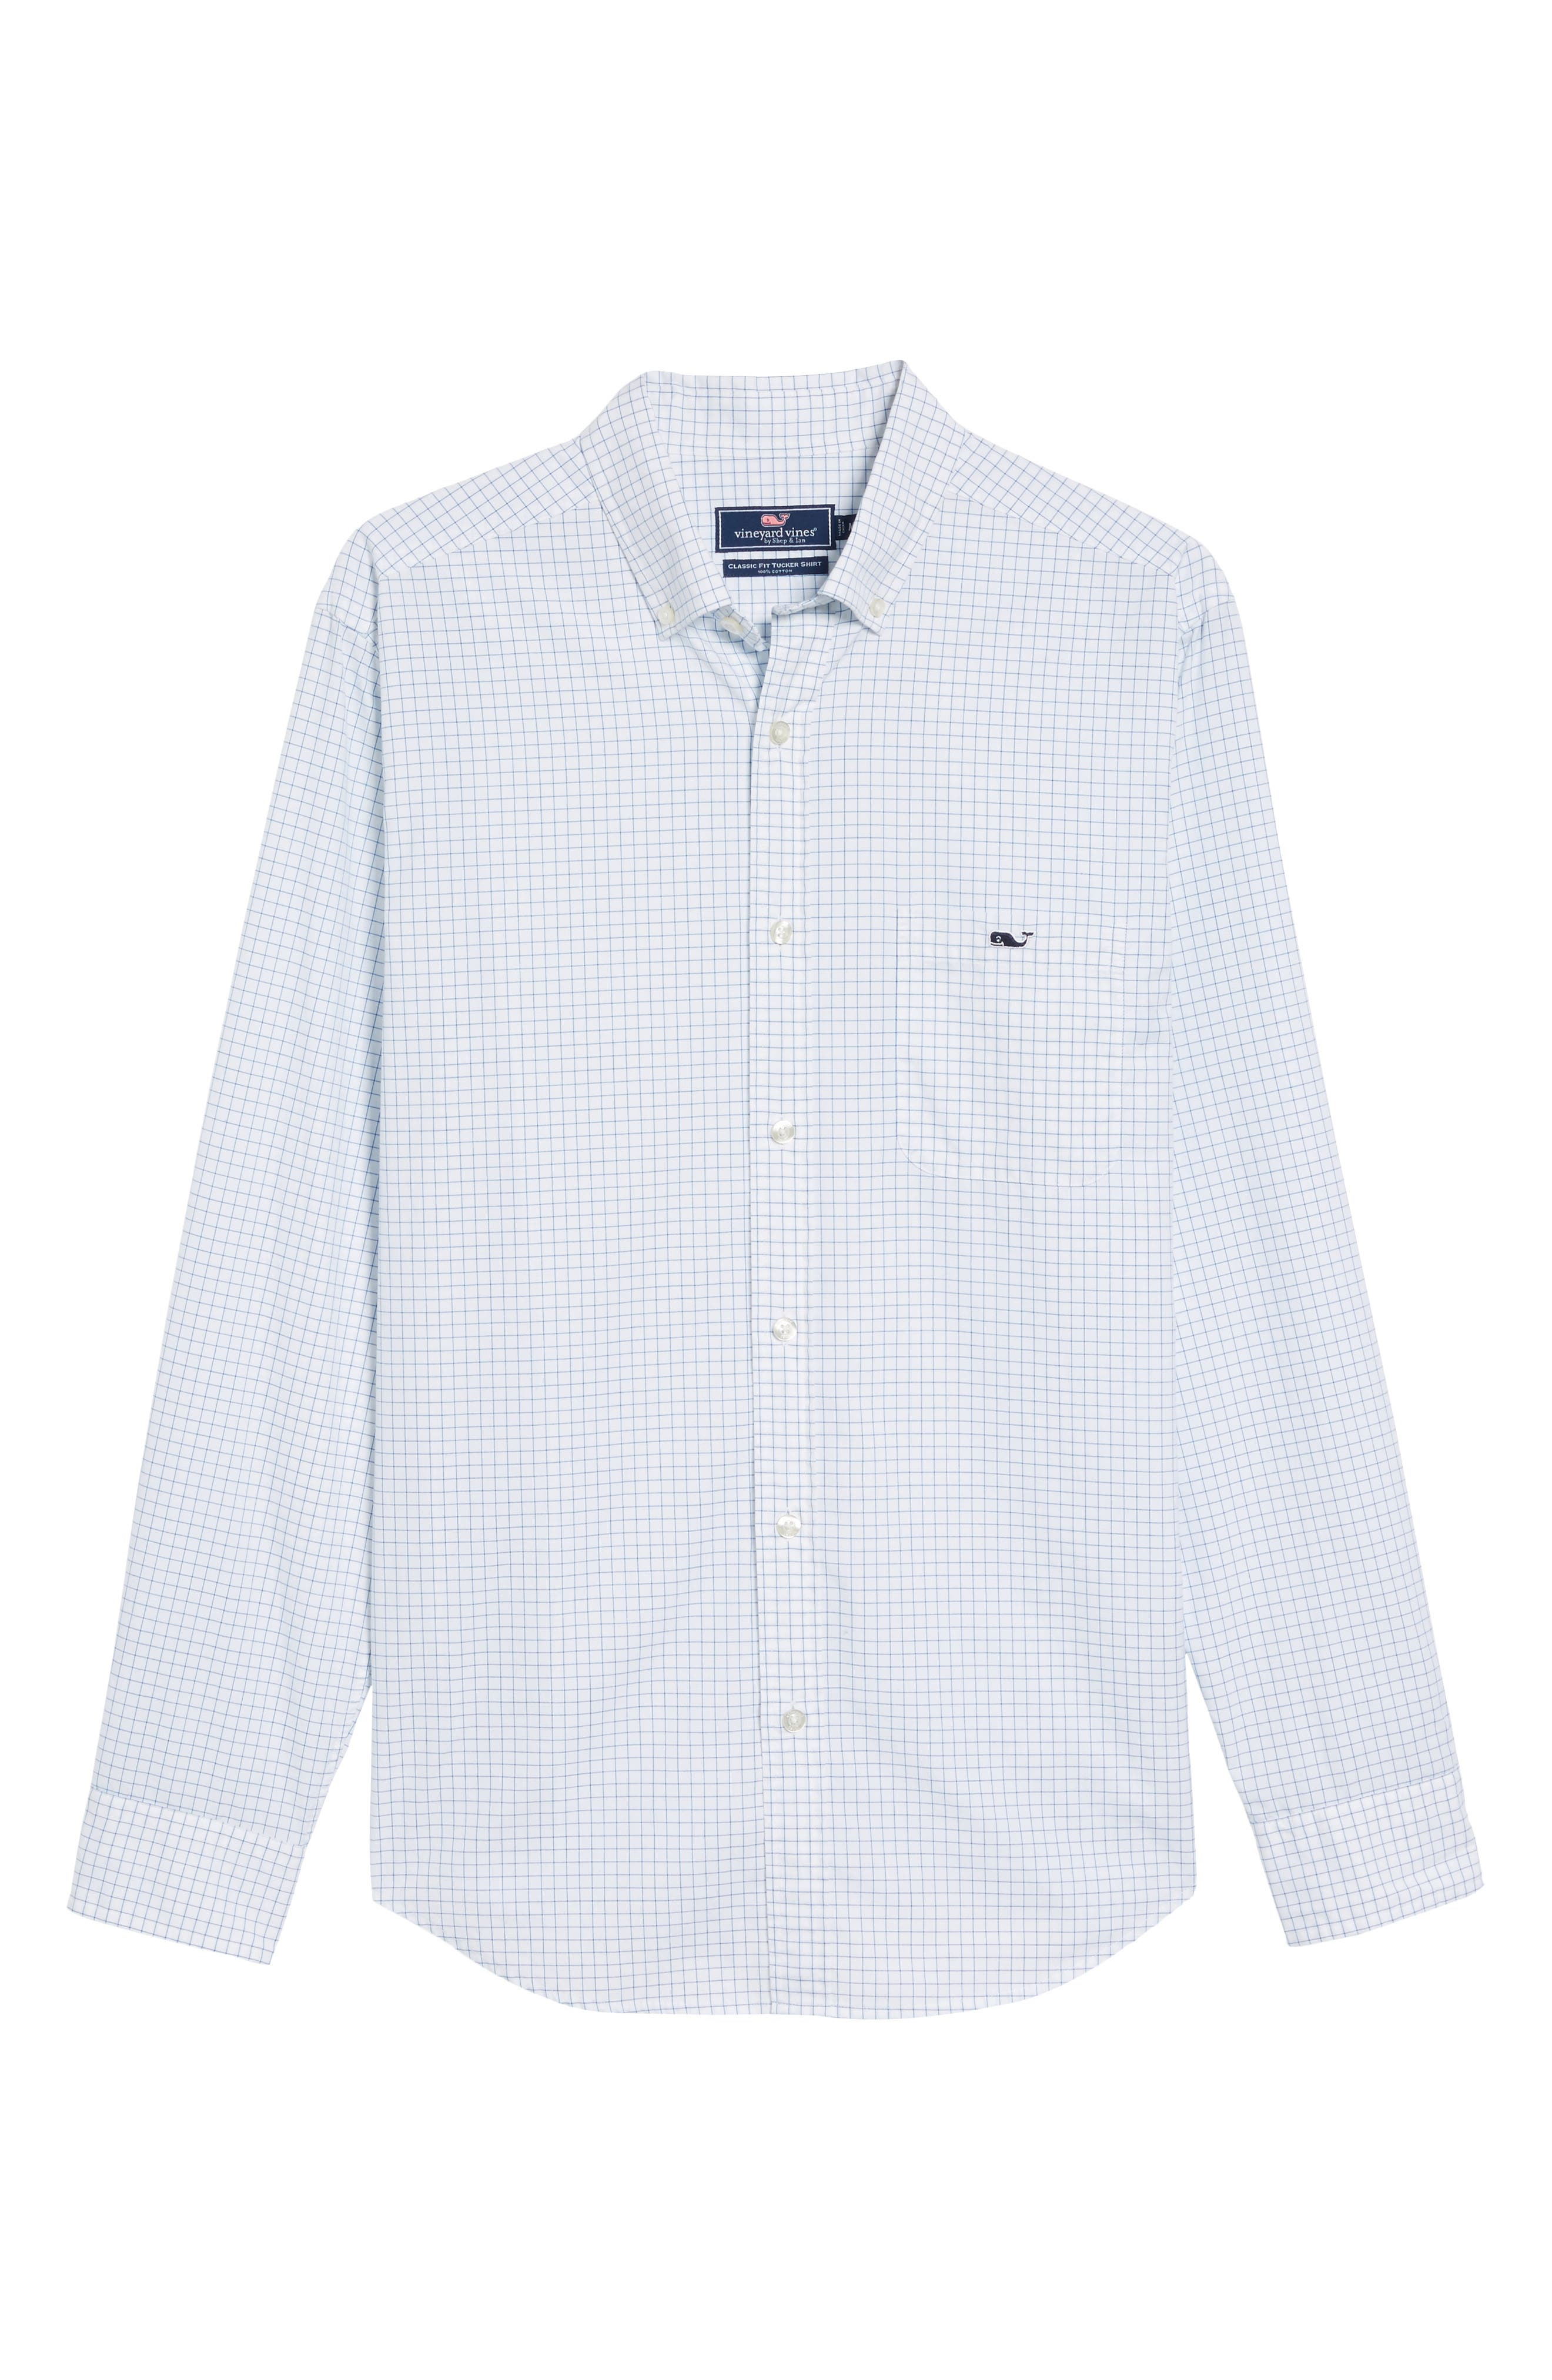 Navy Beach Classic Fit Check Sport Shirt,                             Alternate thumbnail 6, color,                             414